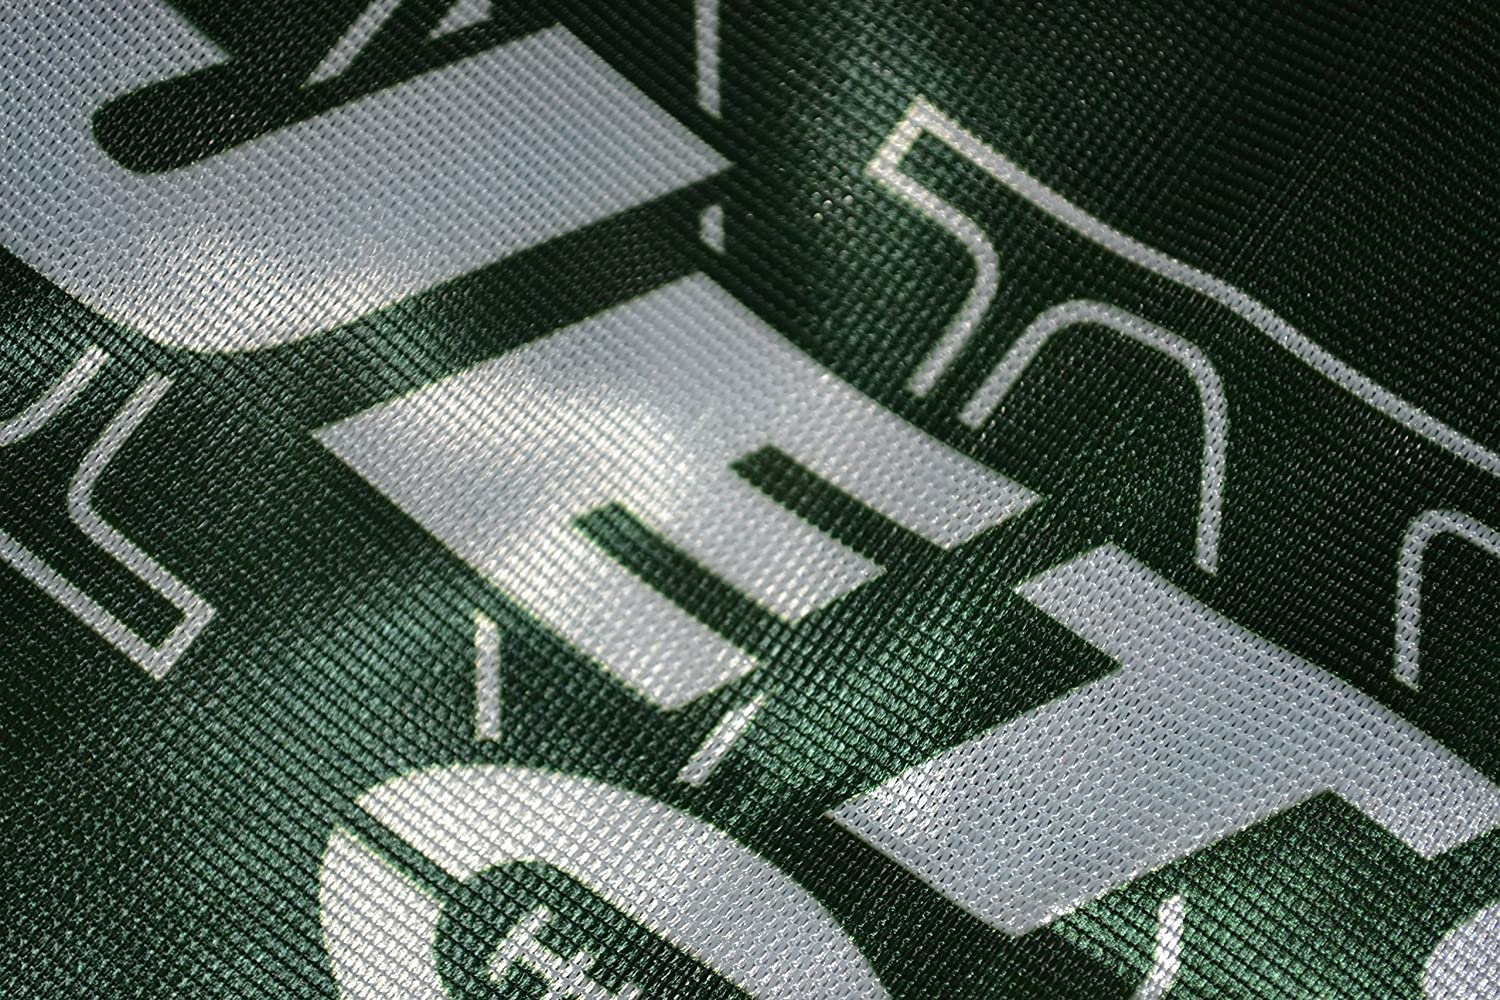 New York Jets NFL Licenced Car Flag   B00OEYA3XW, 出産祝い 名入れギフト ココロコ 6f0b578e